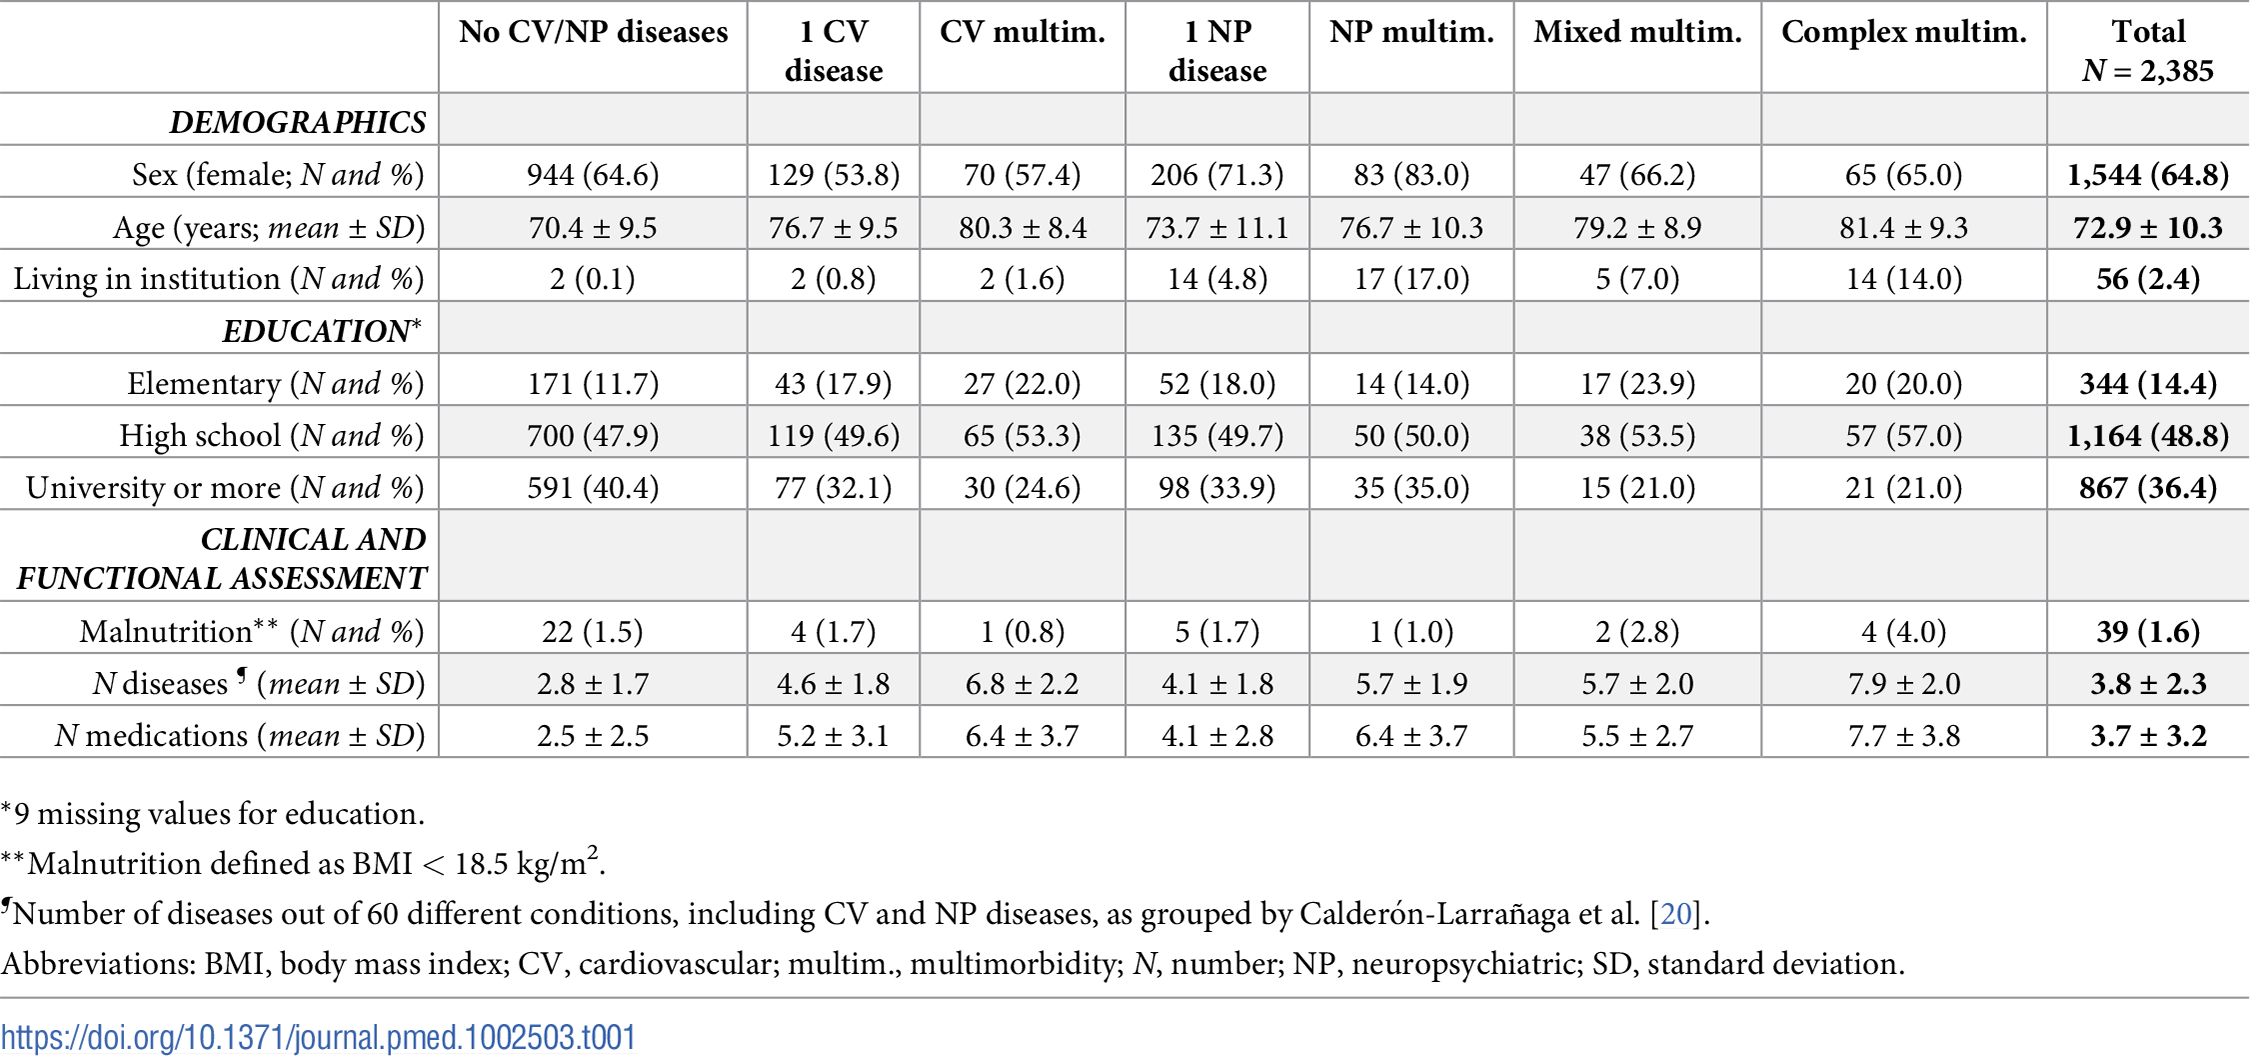 Sample characteristics at baseline by patterns of CV and NP chronic diseases.